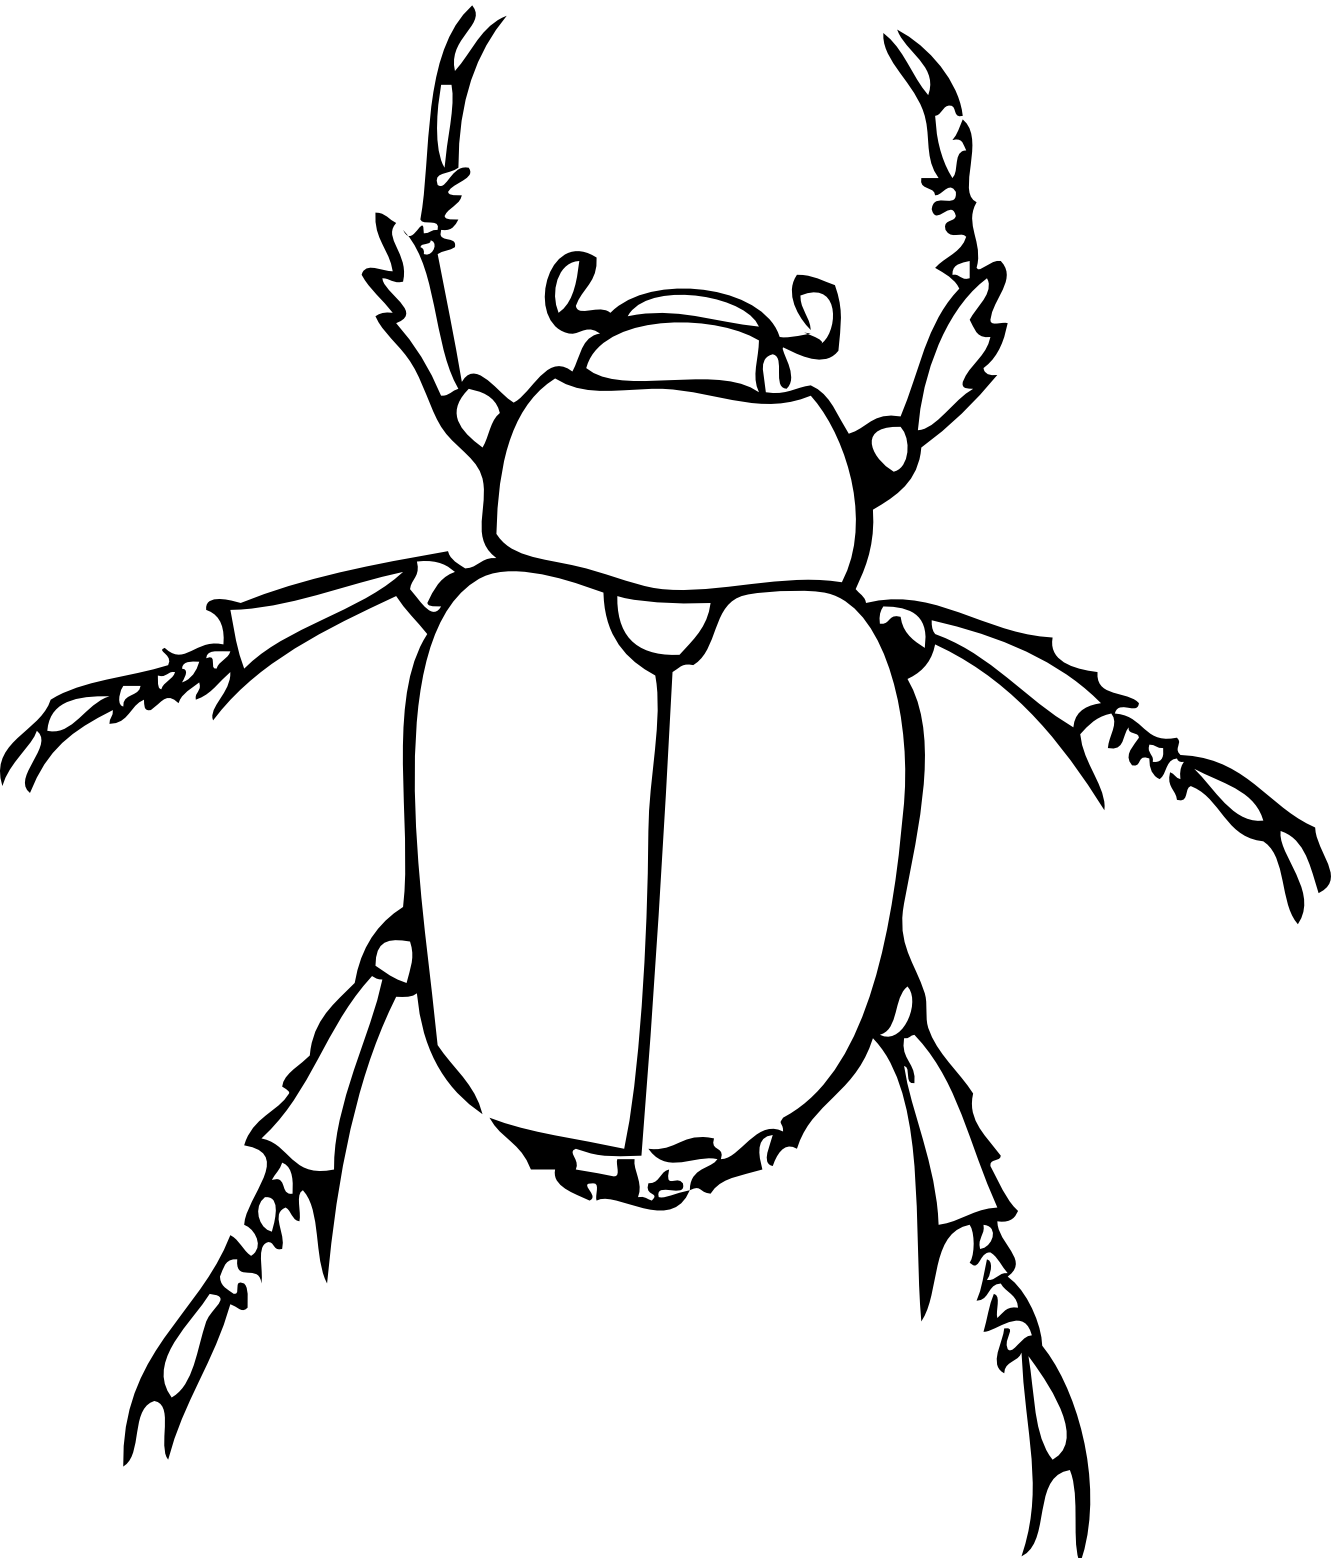 Insect clipart black and white free images 3